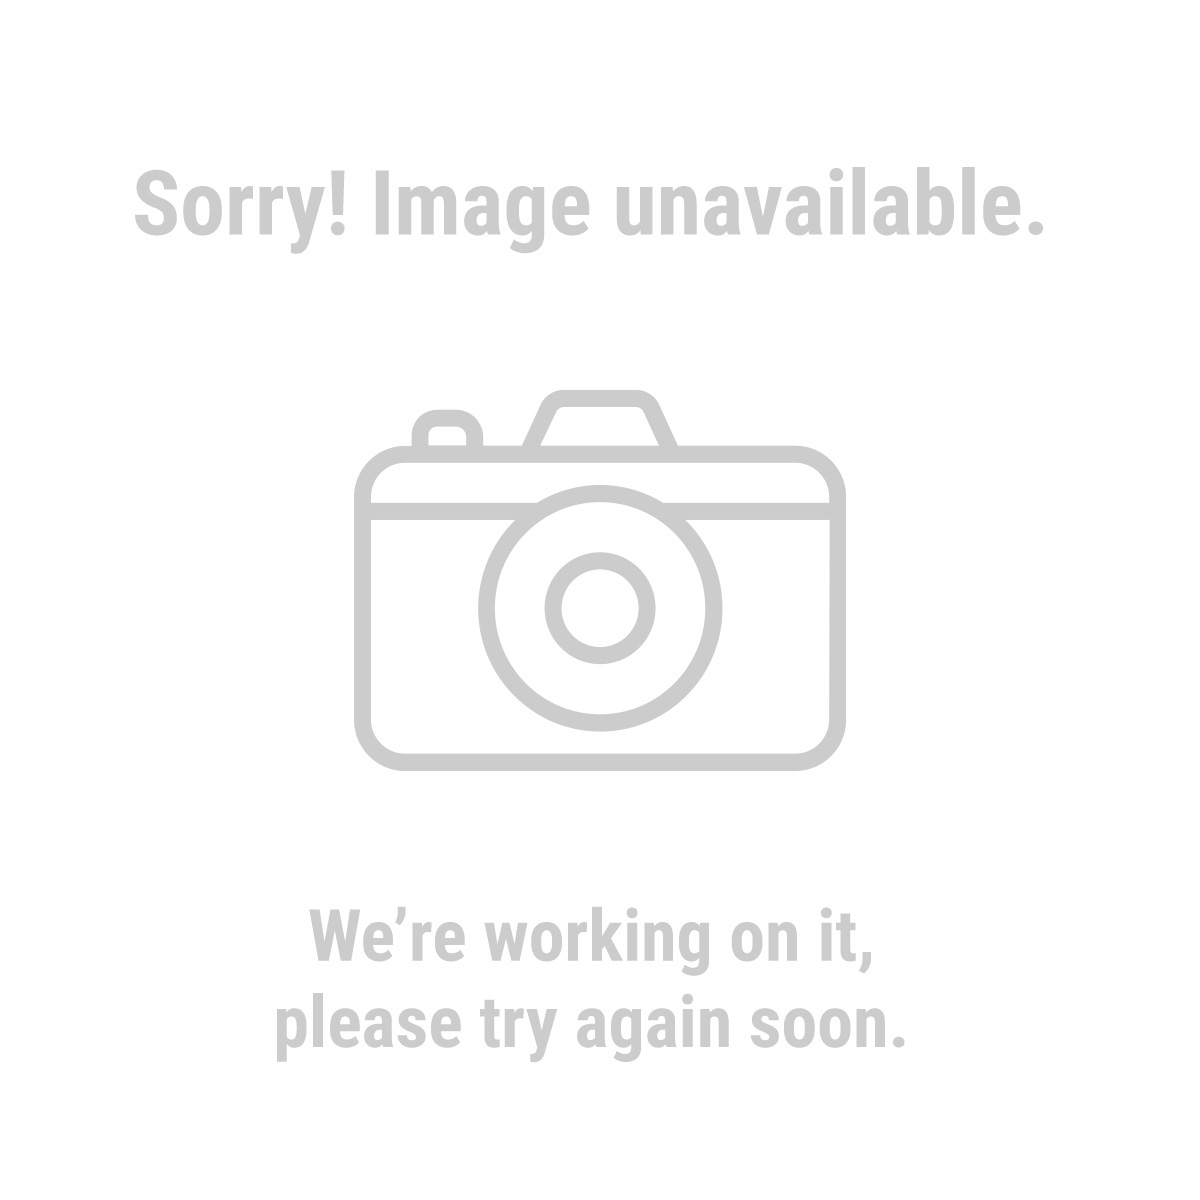 "Chicago Electric Welding 69527 0.030"" ER70S-6 Carbon Steel Welding Wire, 2 Lb. Roll"